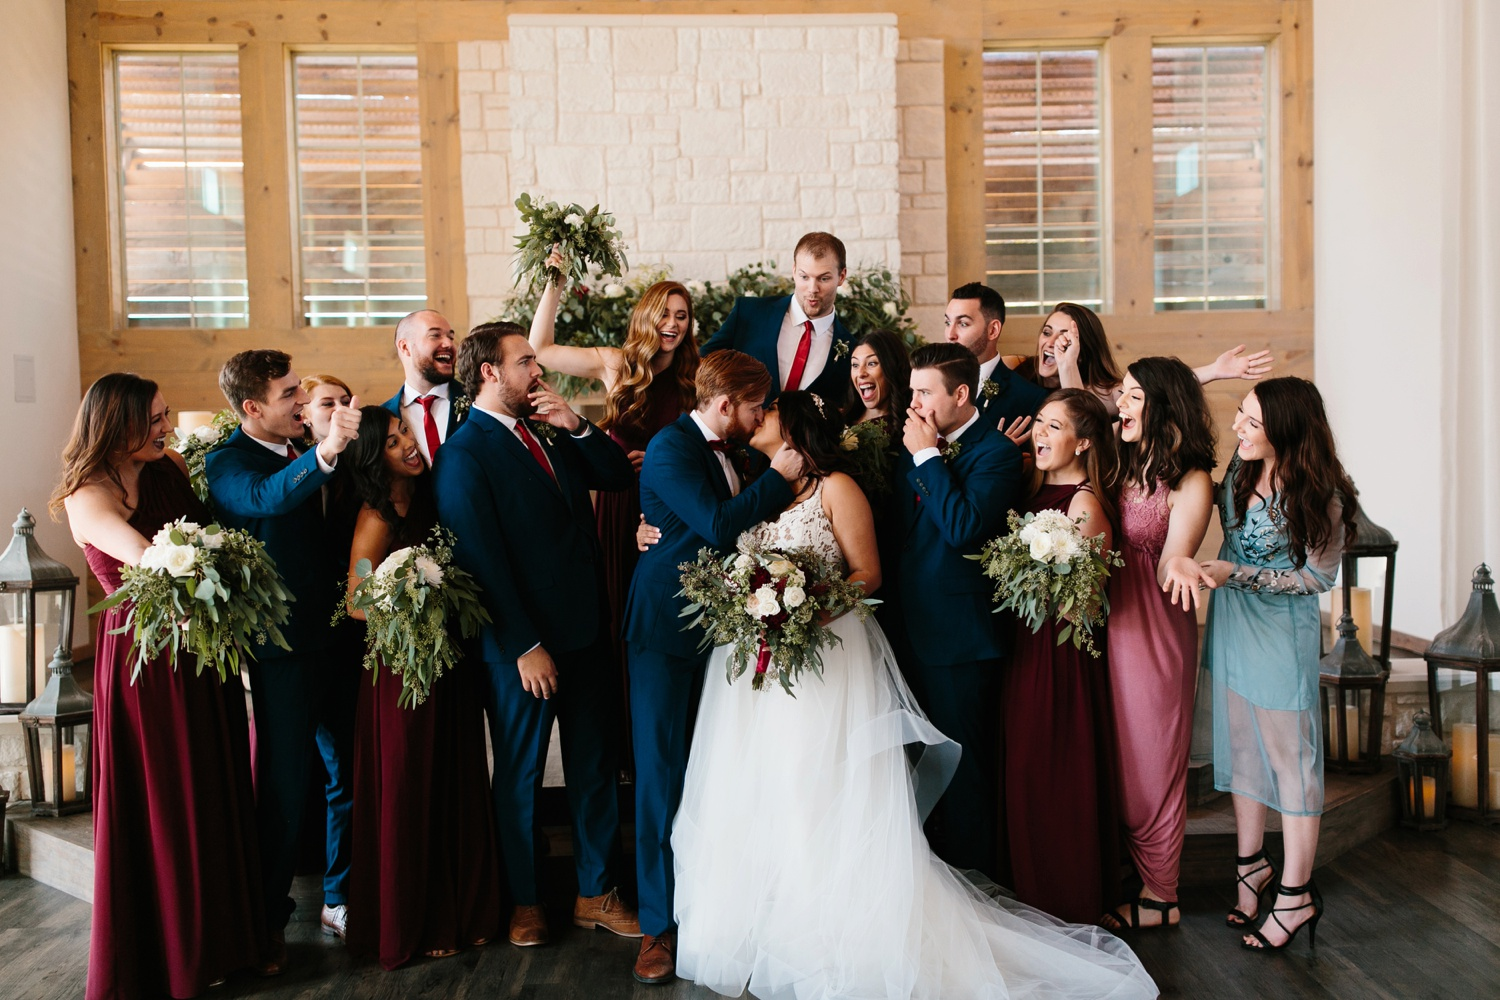 Grant + Lysette | a vibrant, deep burgundy and navy, and mixed metals wedding at Hidden Pines Chapel by North Texas Wedding Photographer Rachel Meagan Photography 126